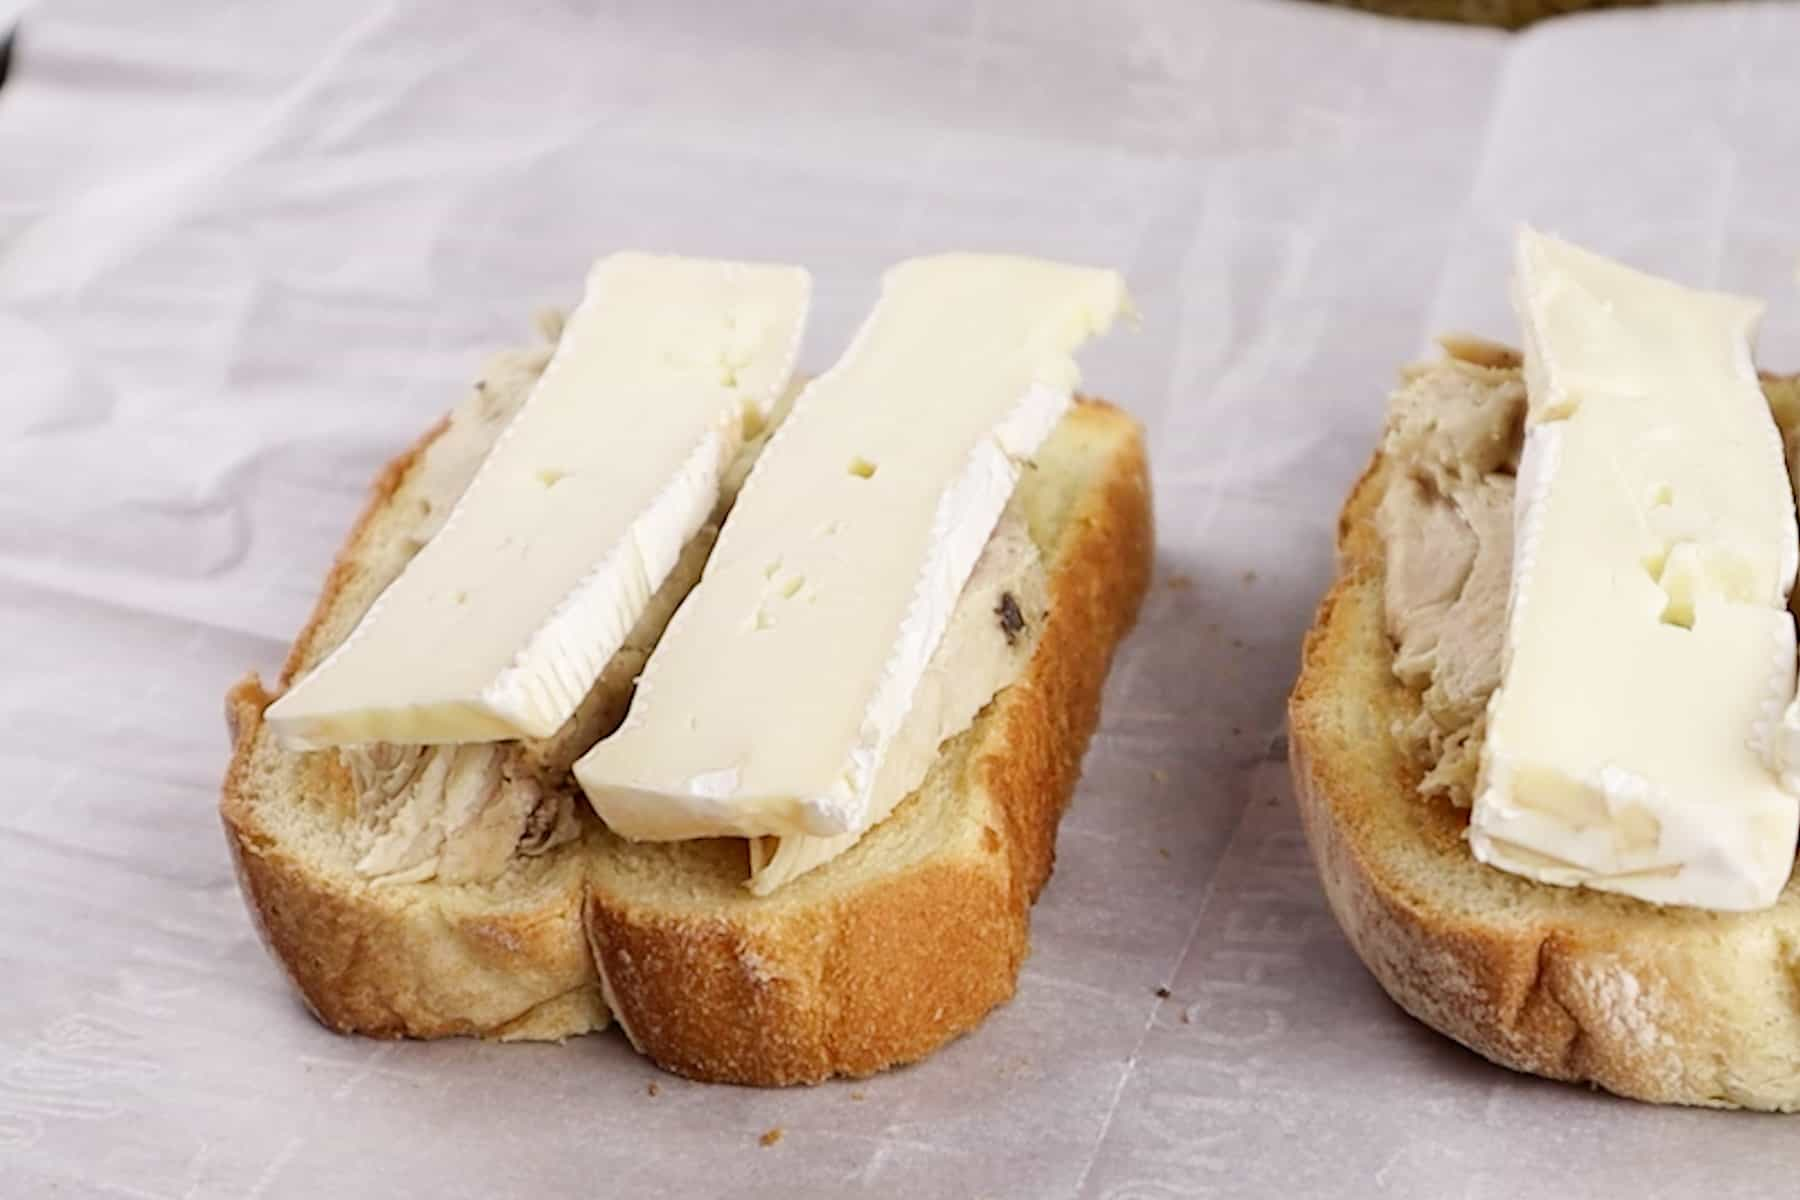 cheese and turkey on bread before broiling